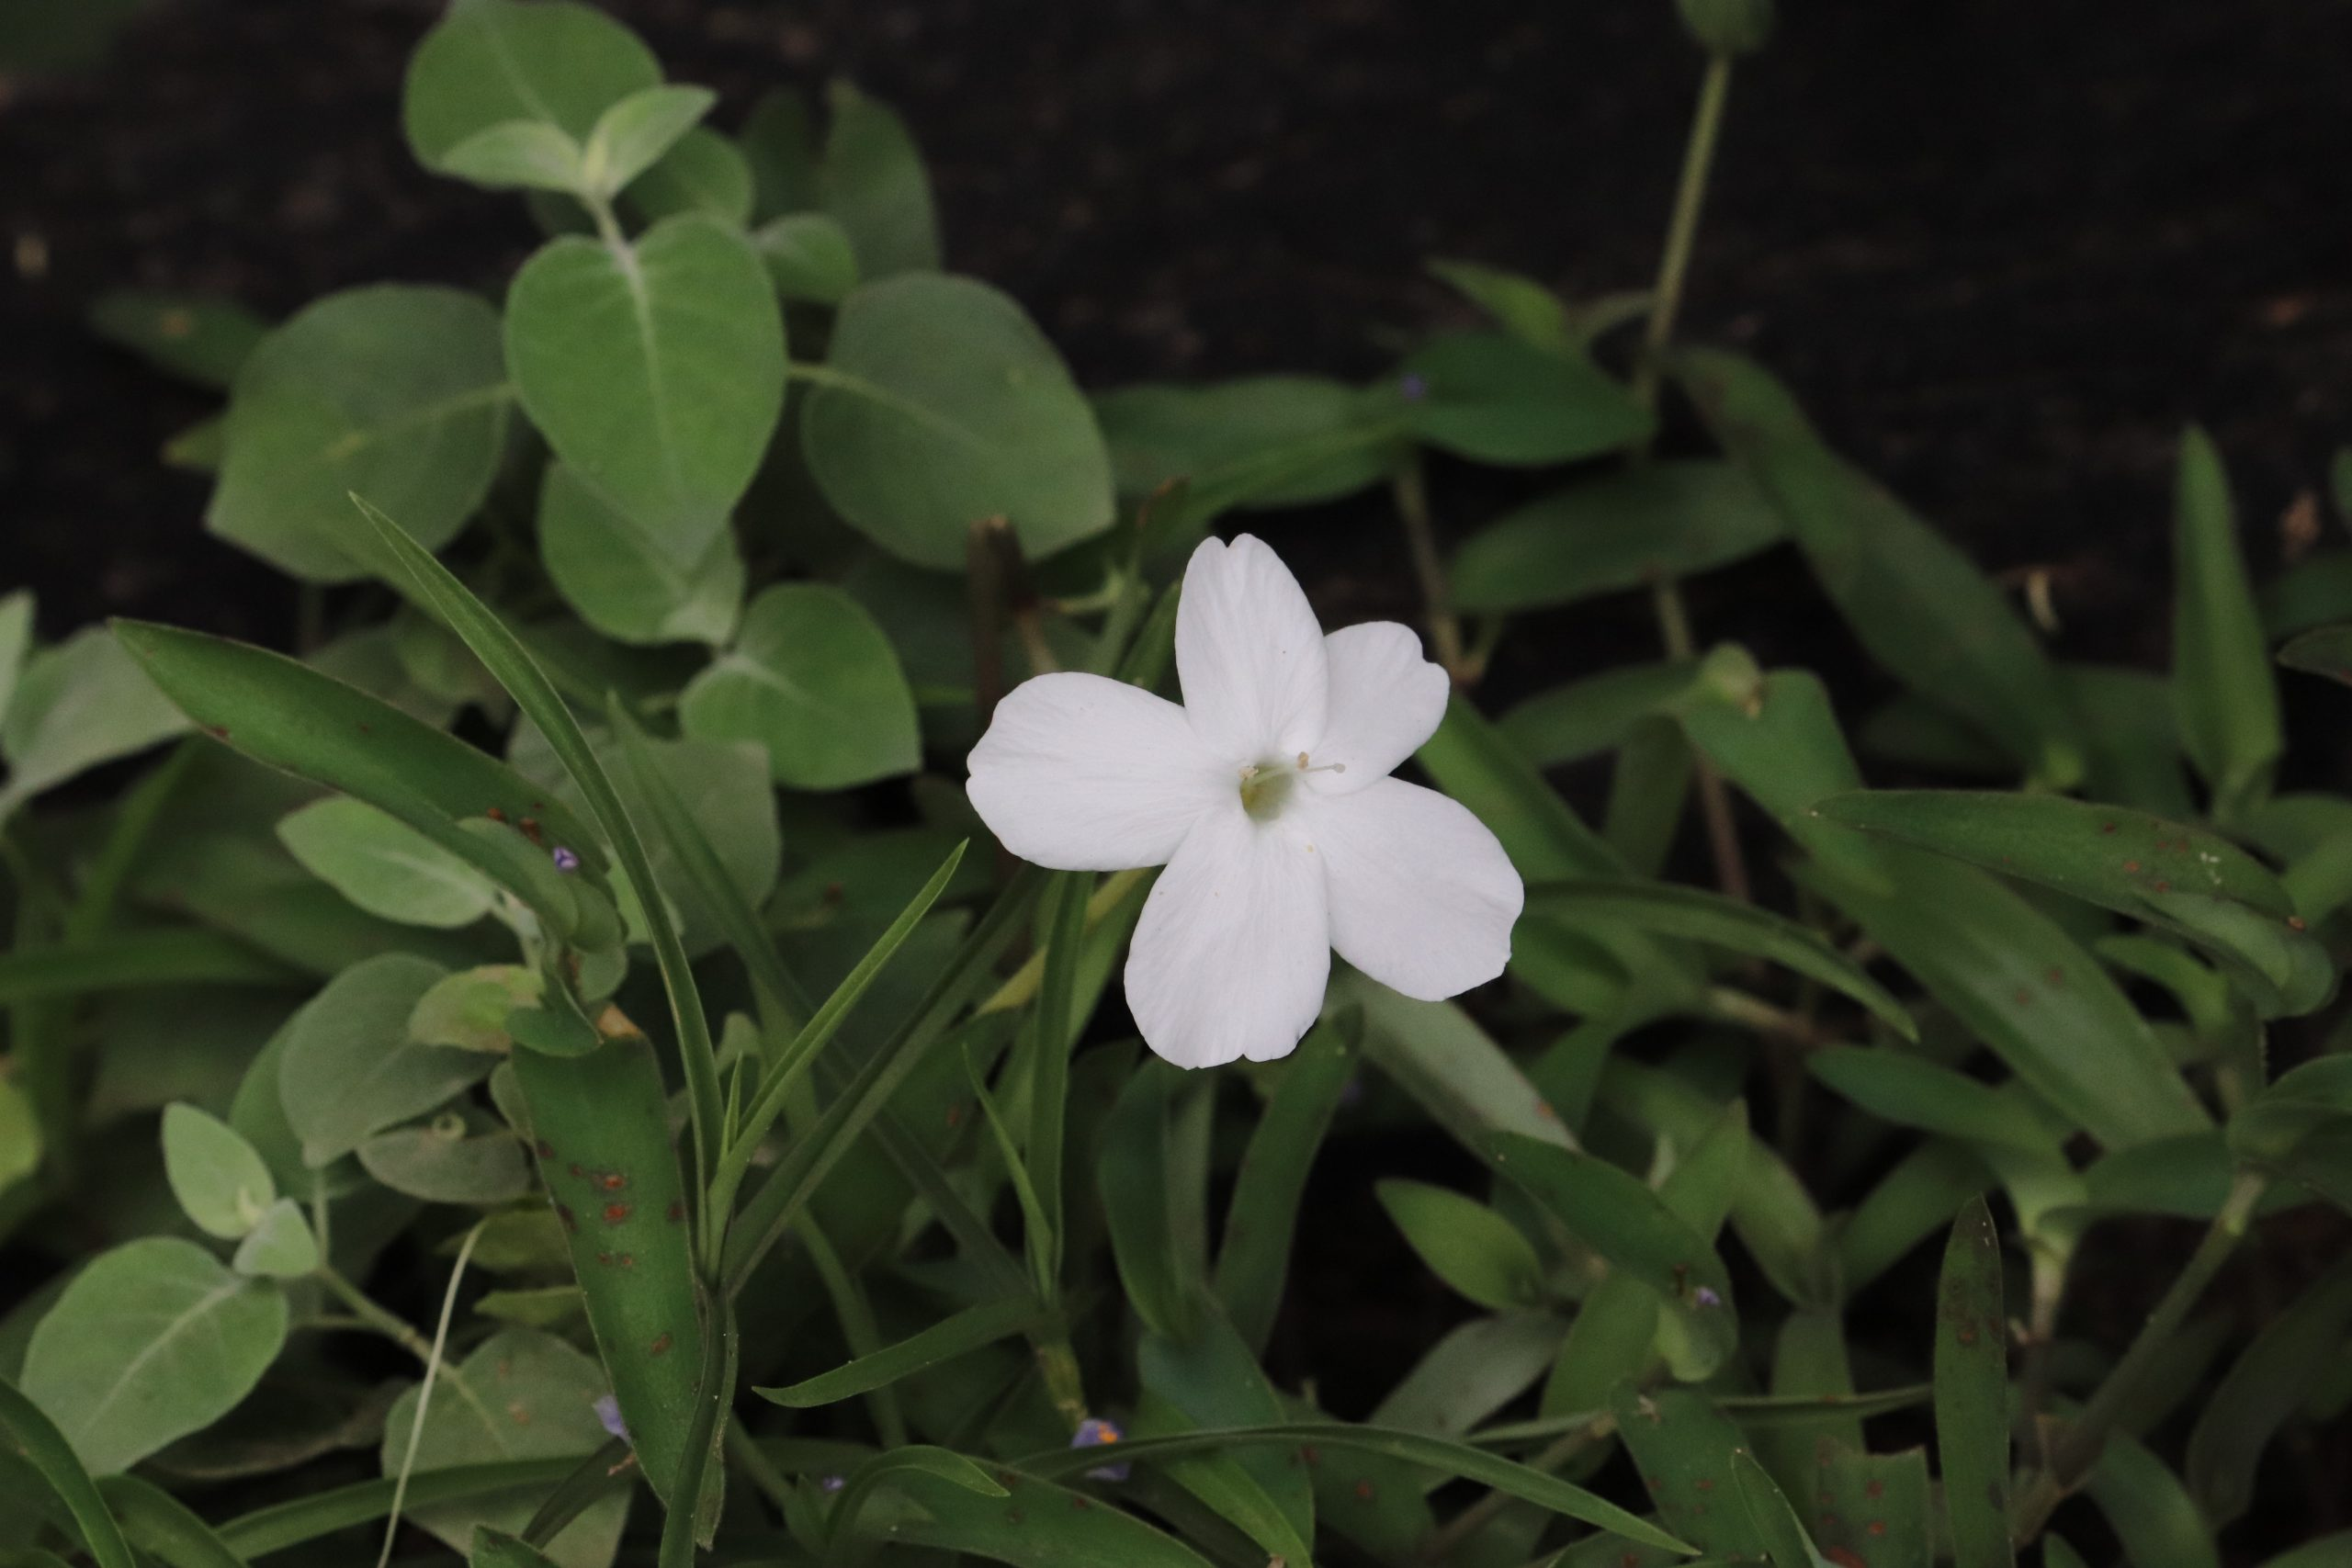 A white flower in a park